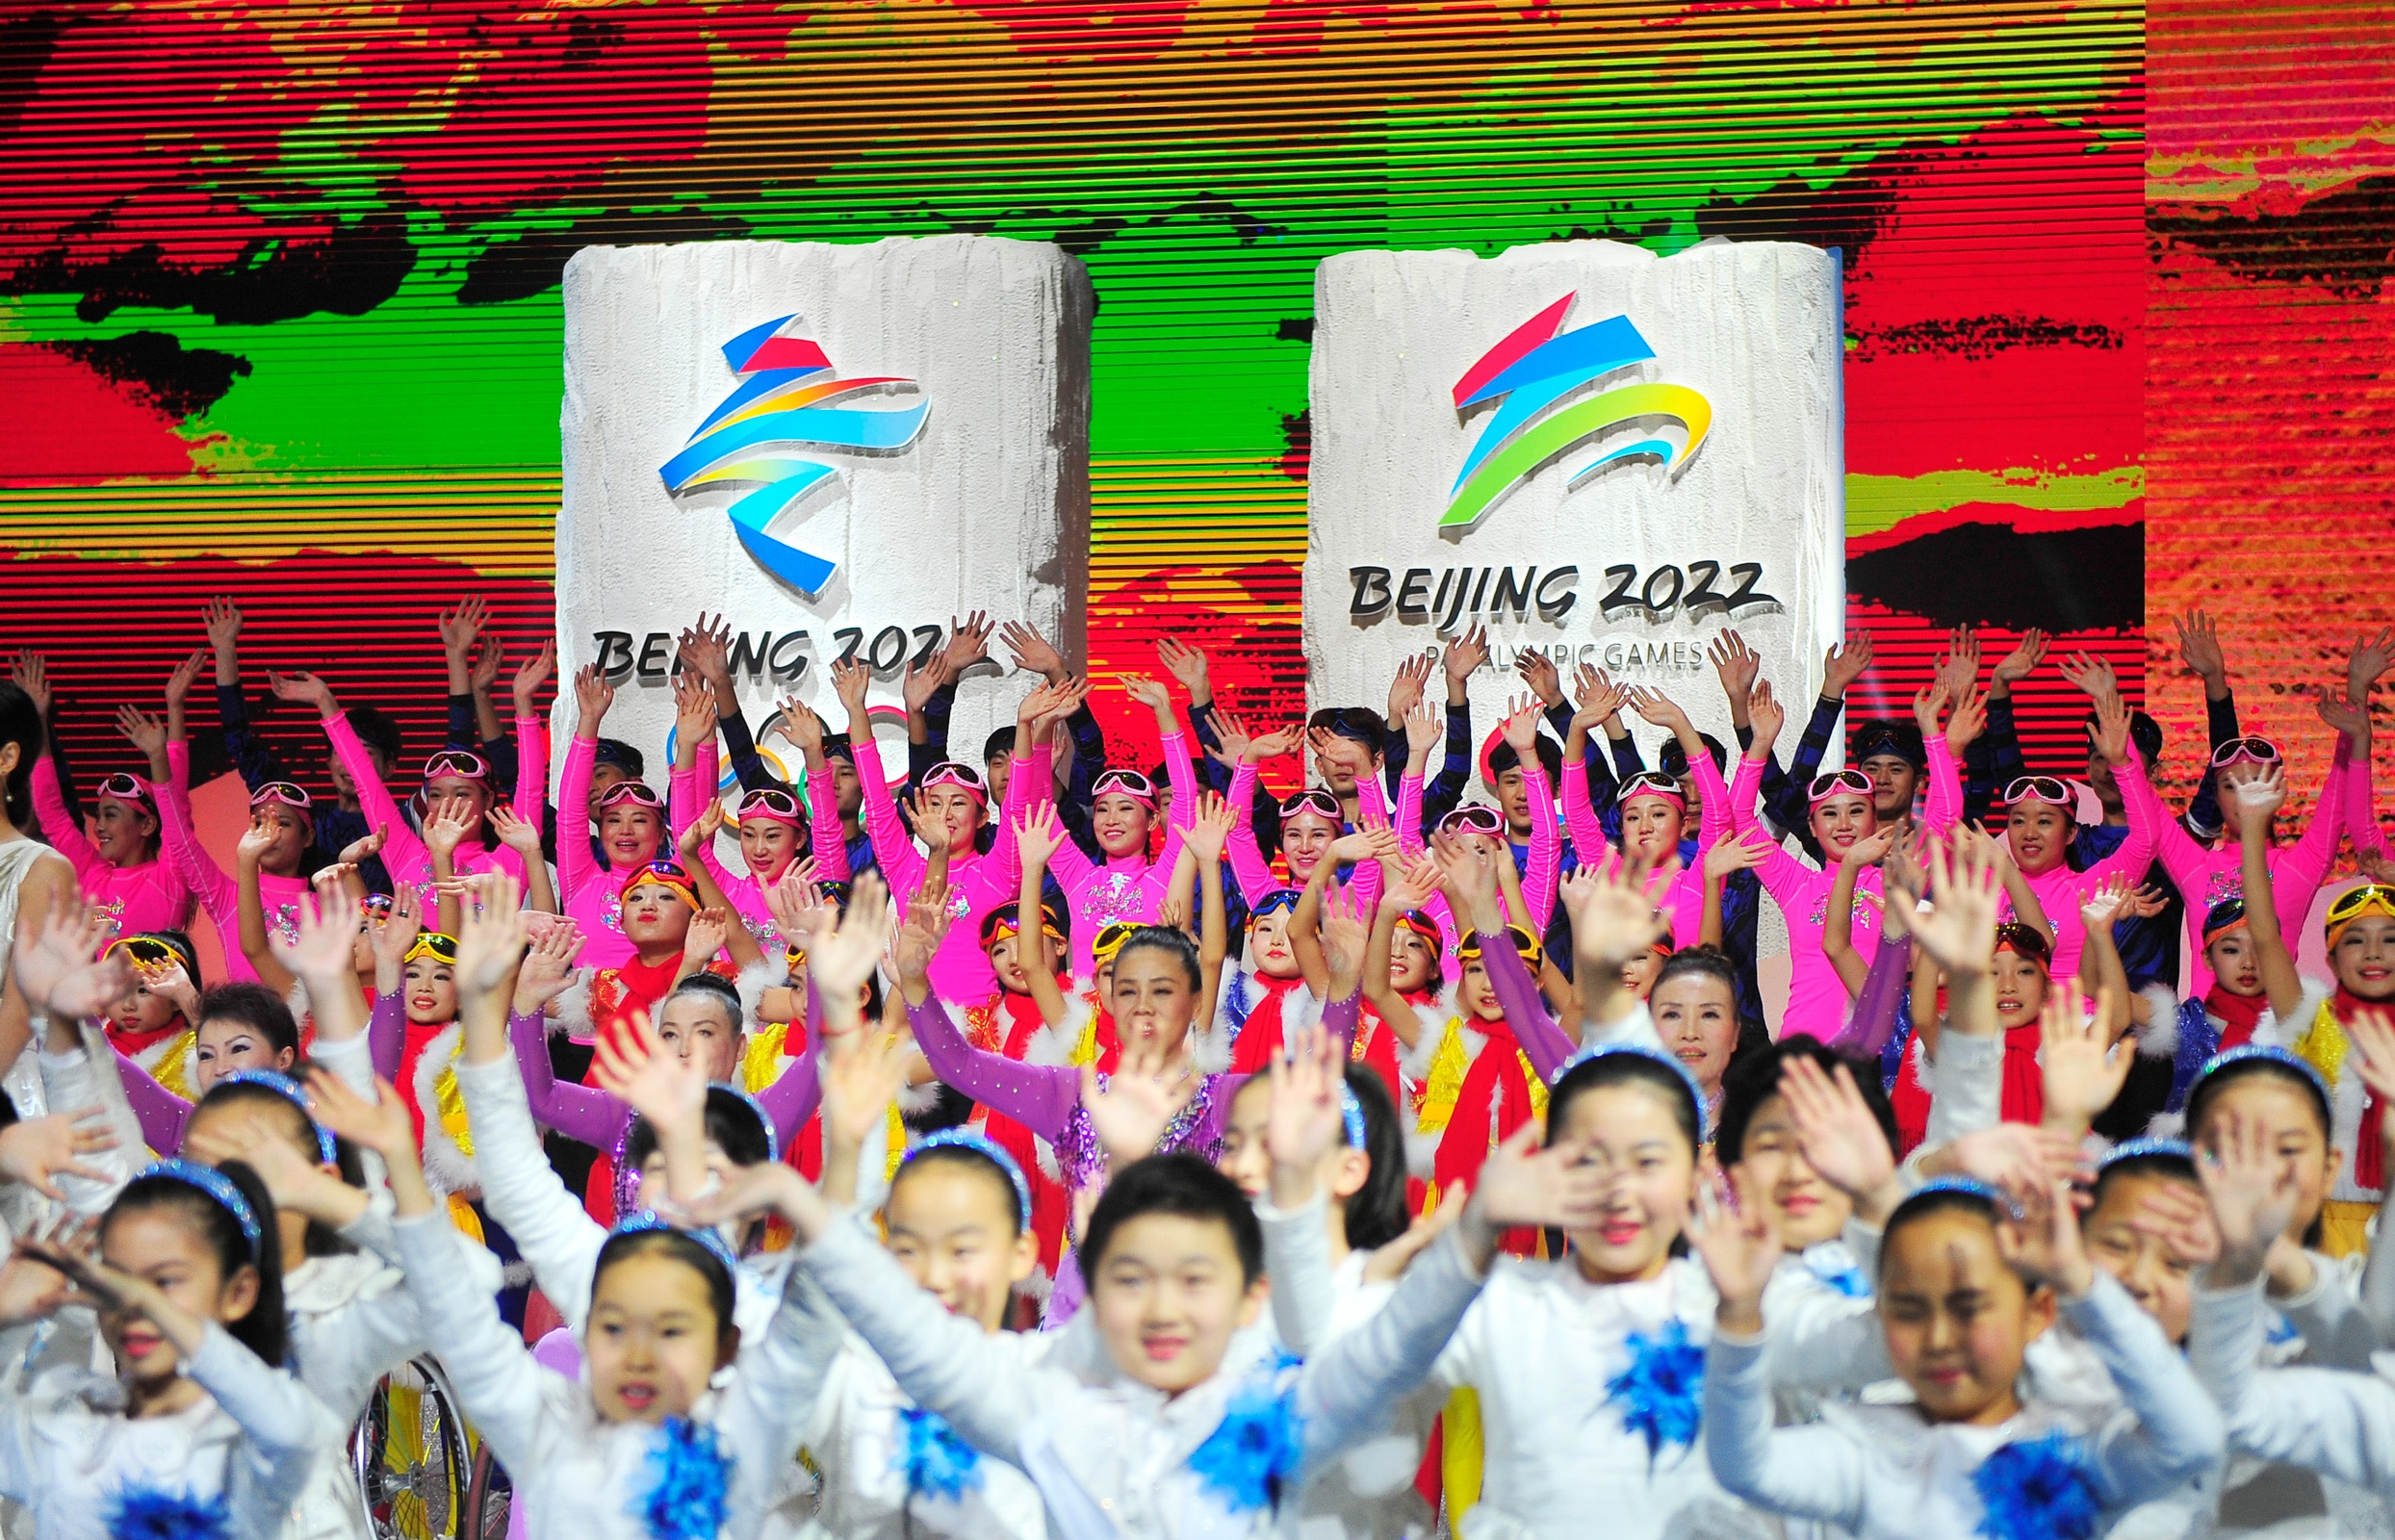 Beijing 2022's Zhangjiakou competition zone